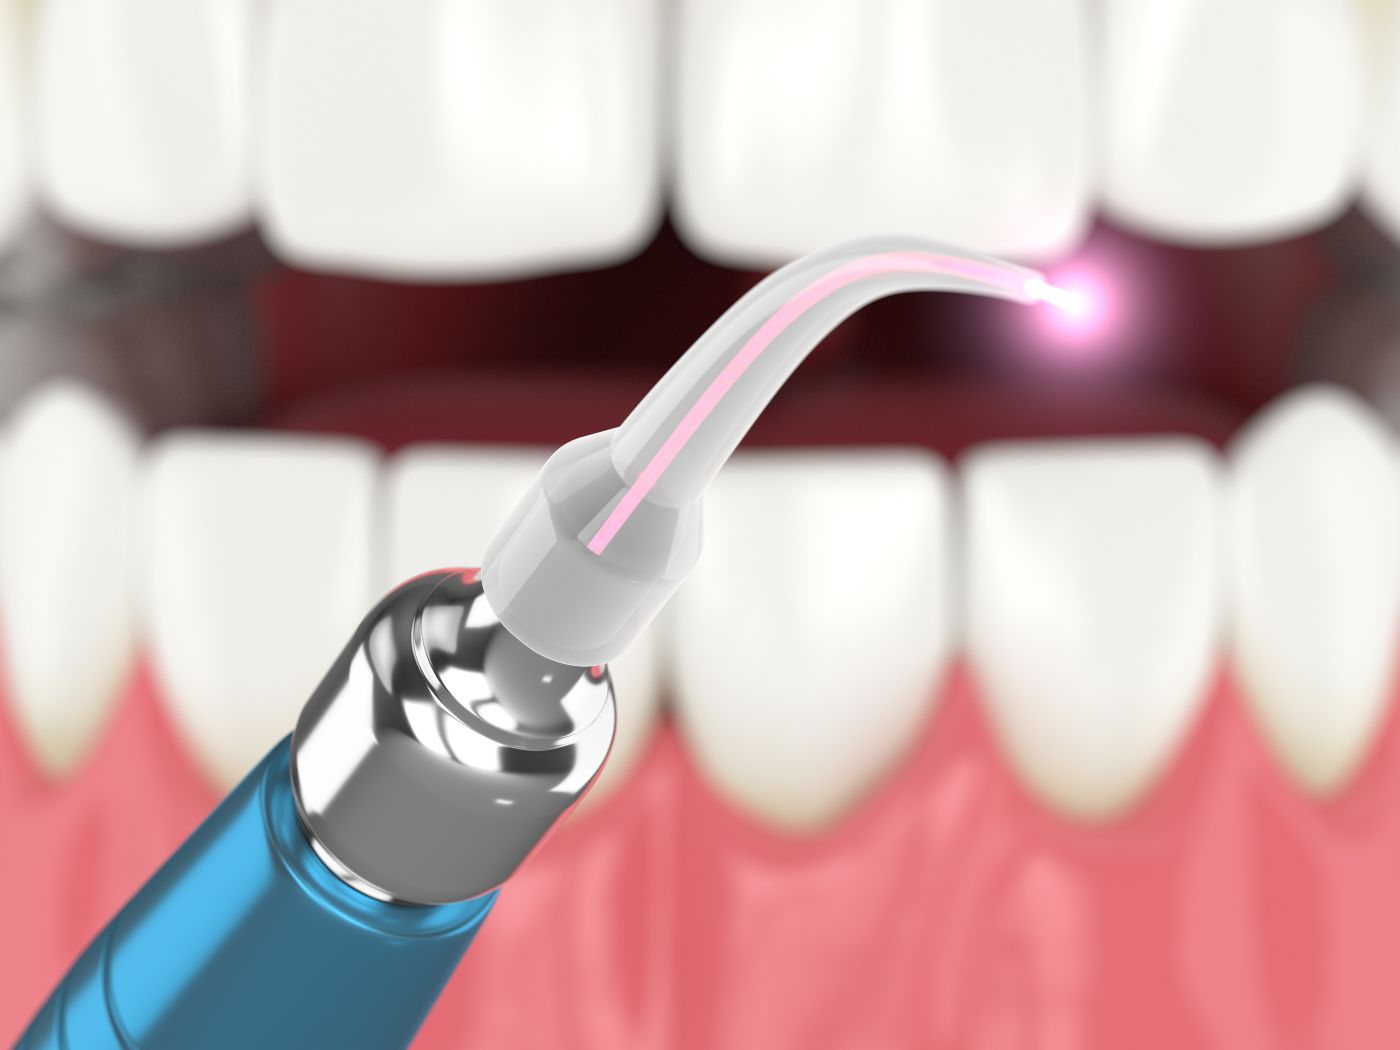 Laser being used to treat gum inflamation